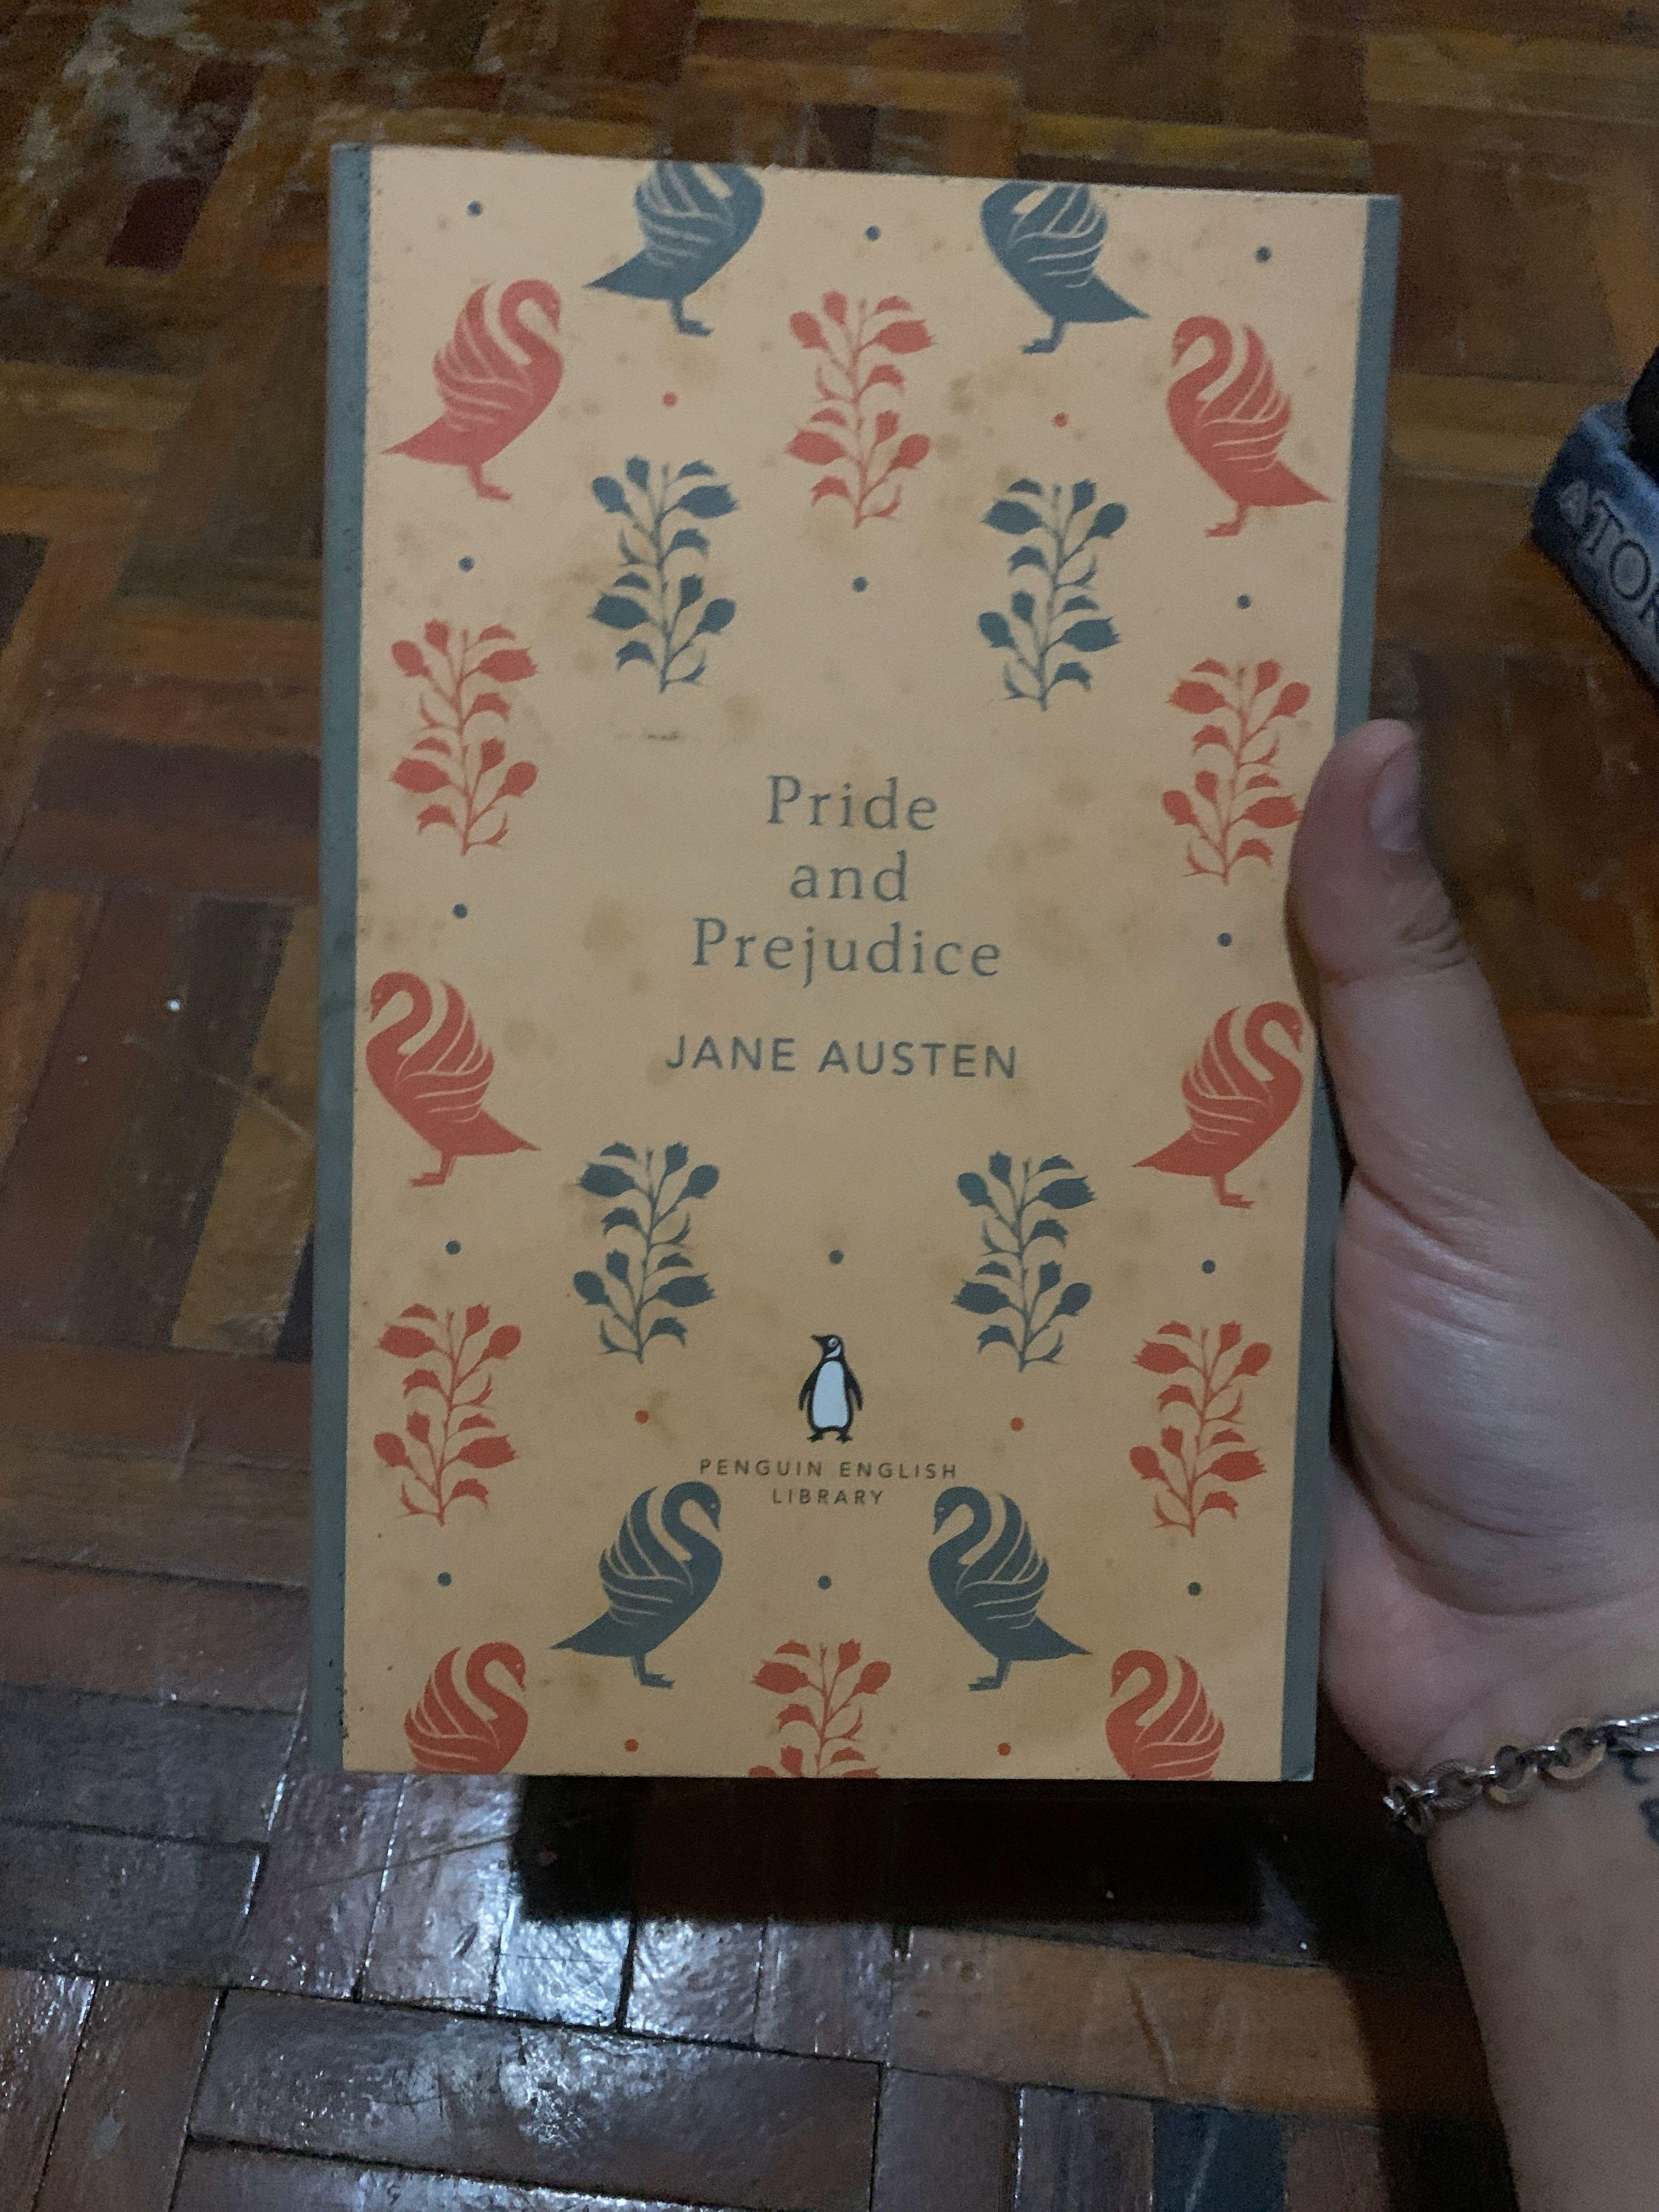 Pride and Prejudice by Jane Austen (Penguin English Library edition)